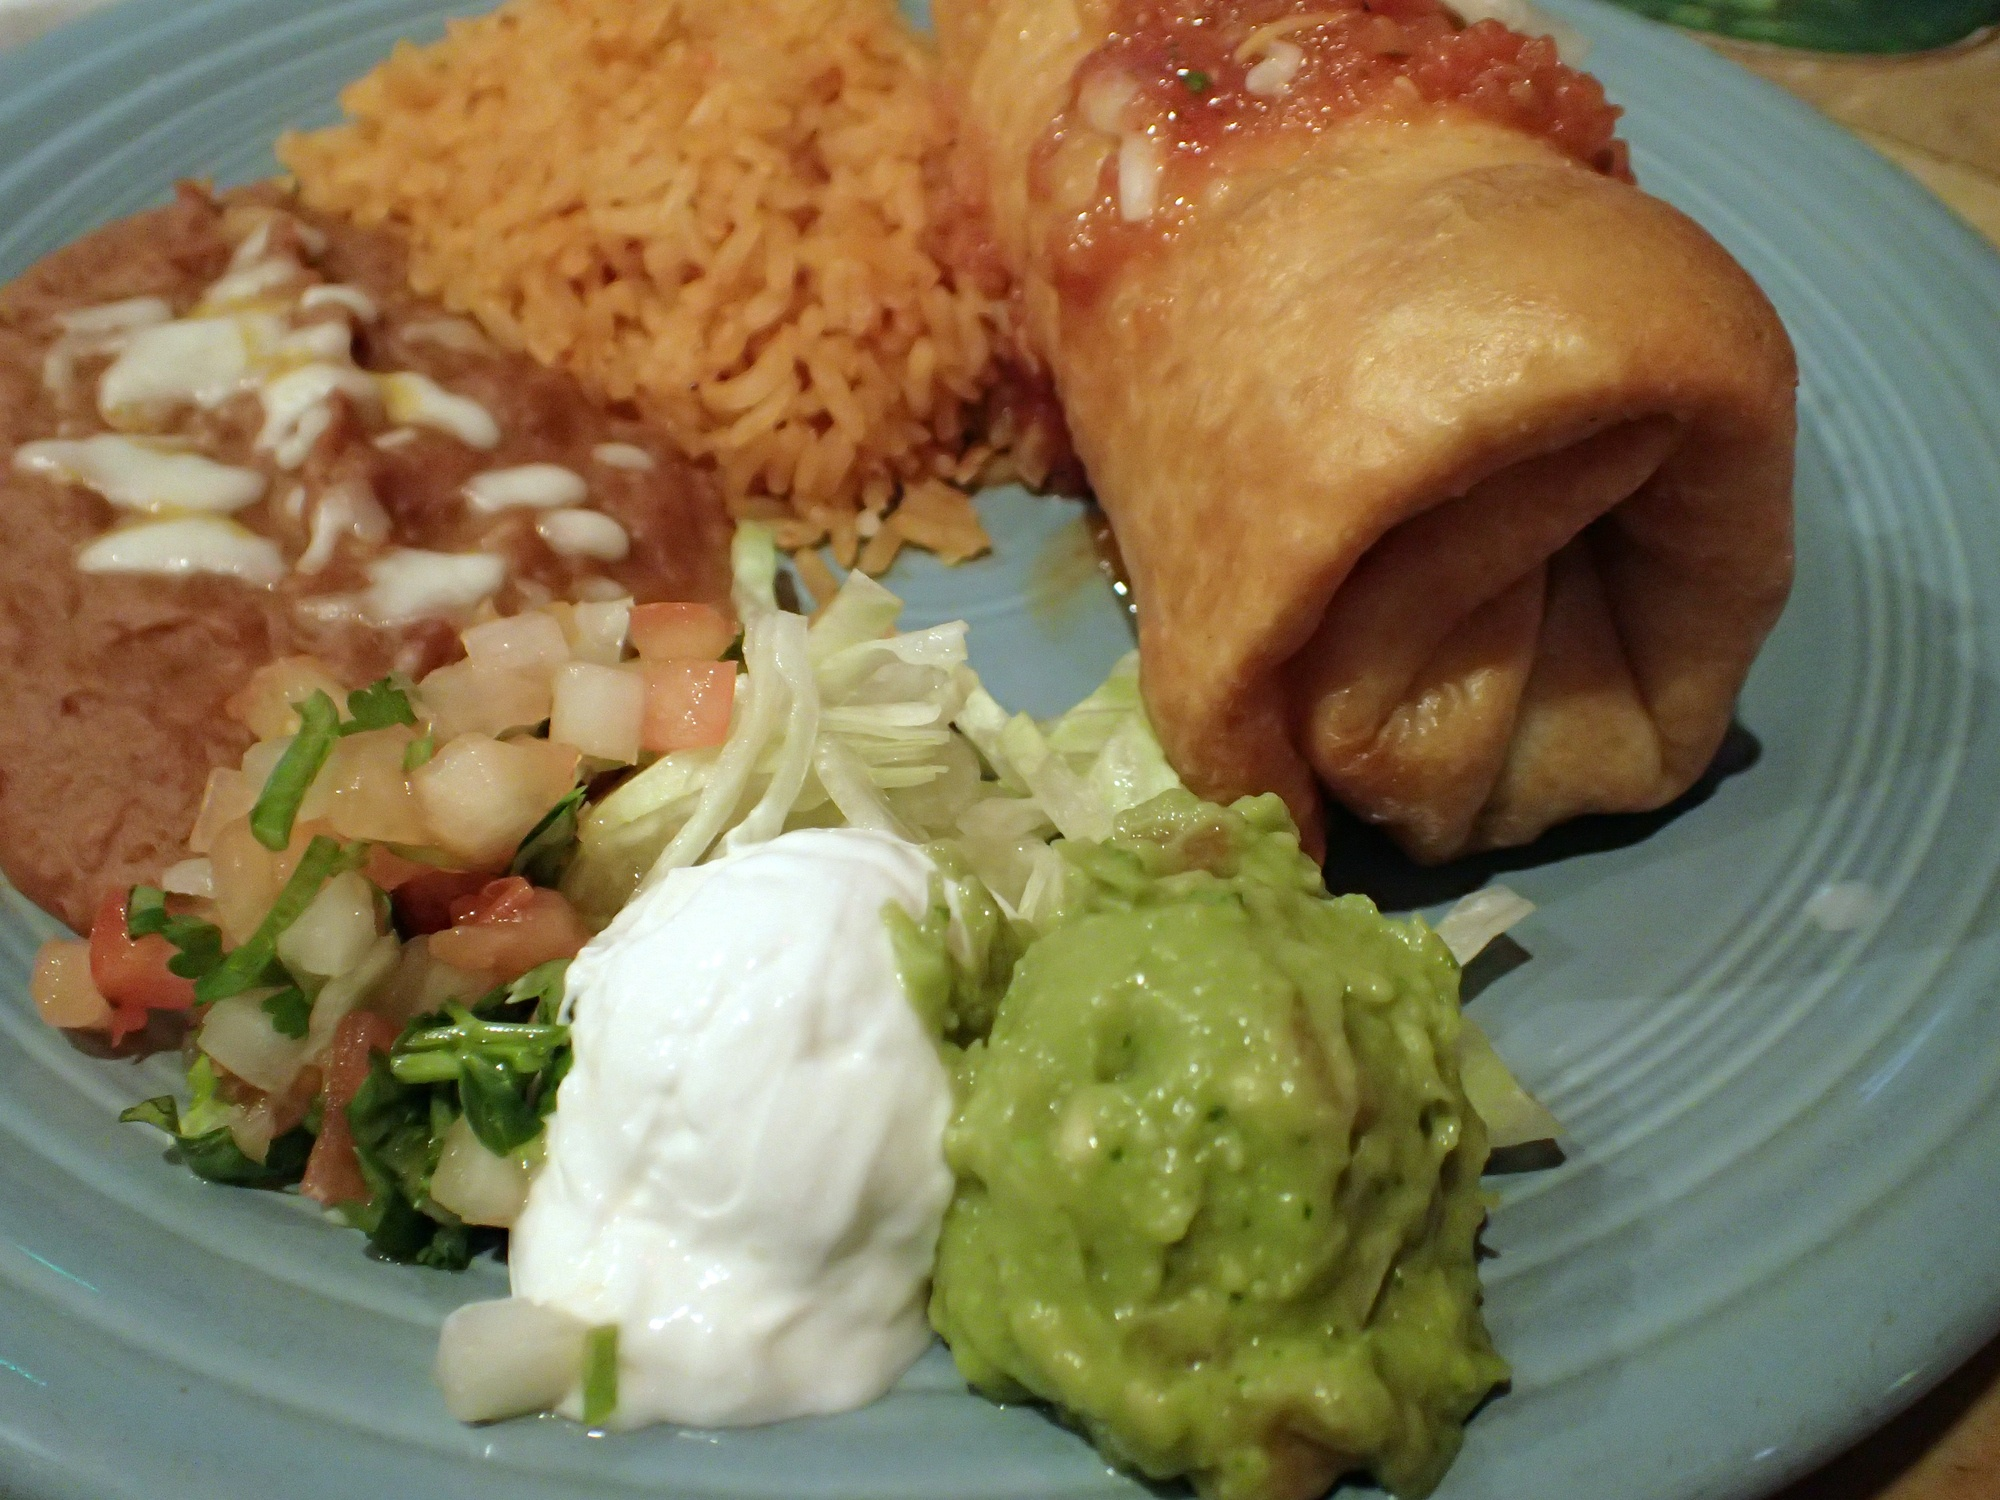 mexican chimichanga plate featuring spanish rice, refried beans, guacamole, pico de gallo, and sour cream on a blue plate